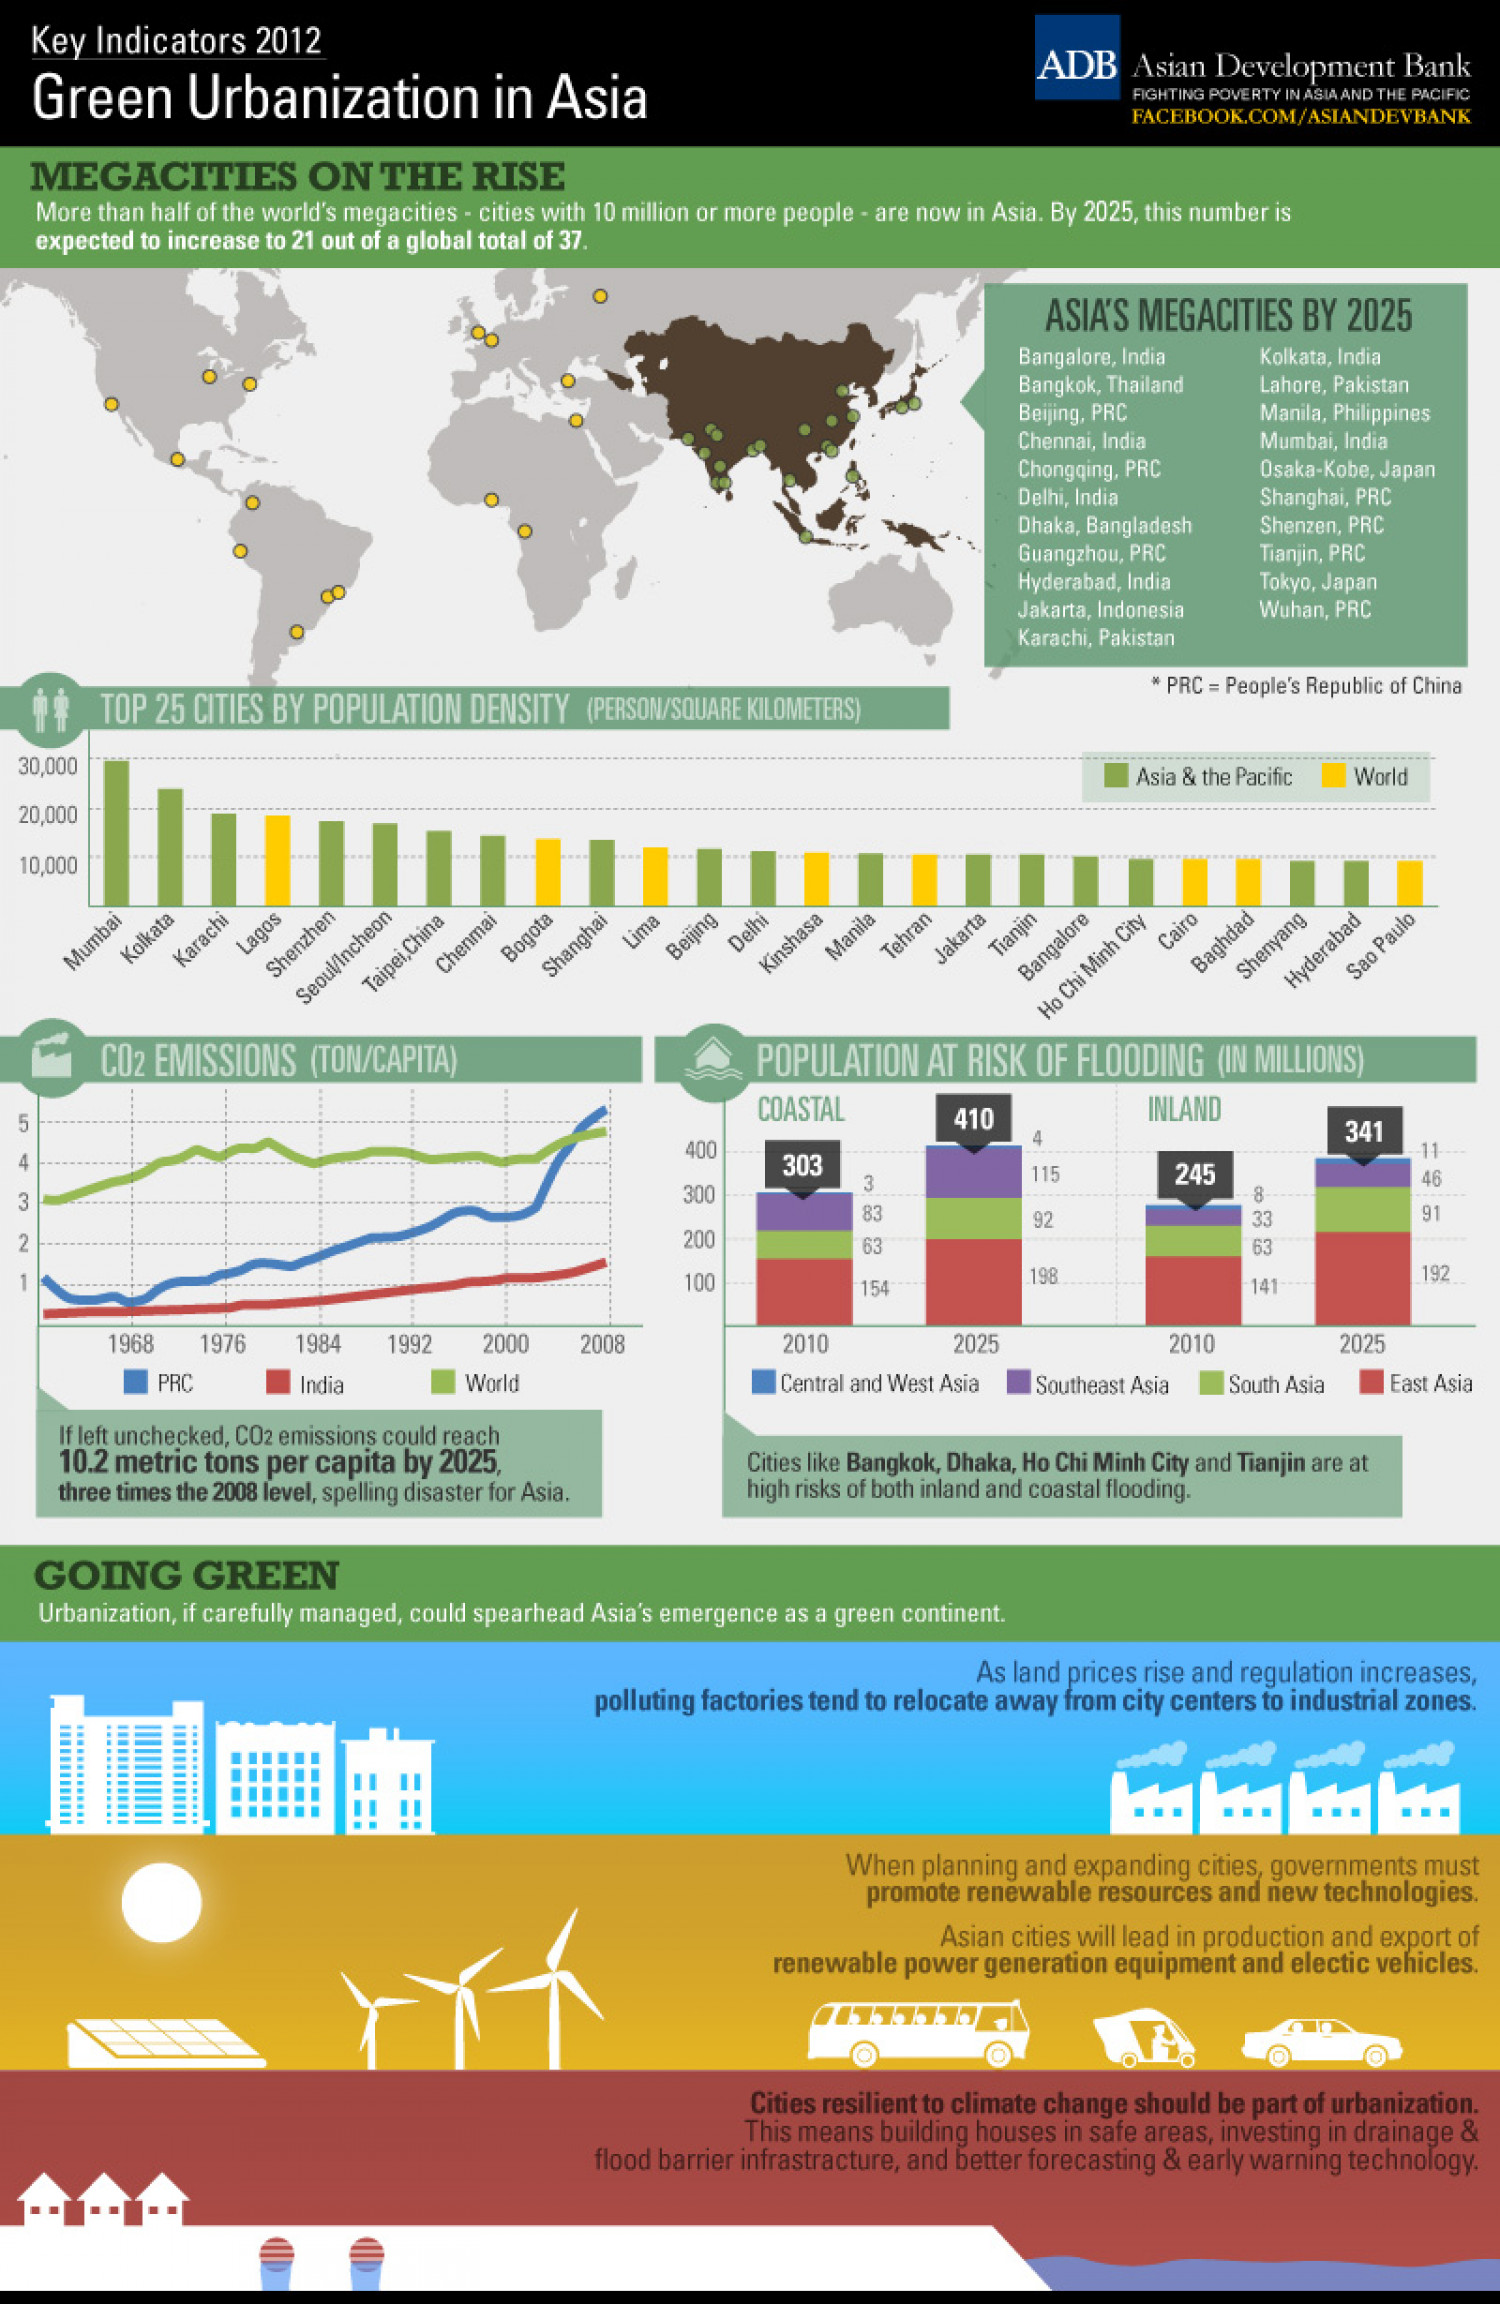 Green Urbanization in Asia Infographic